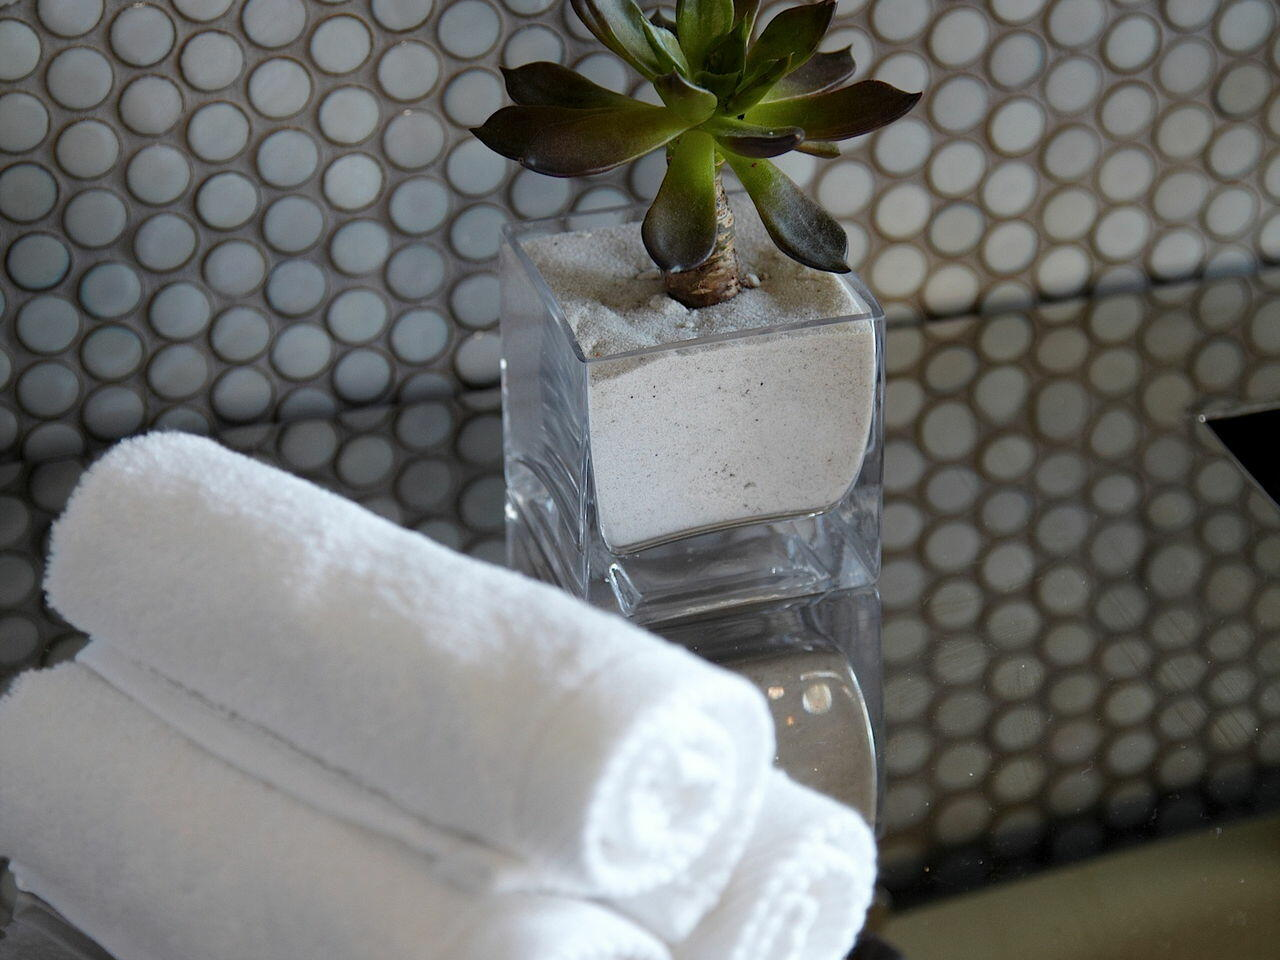 3 White towels on a table next to a plant at Dream Downtown NYC